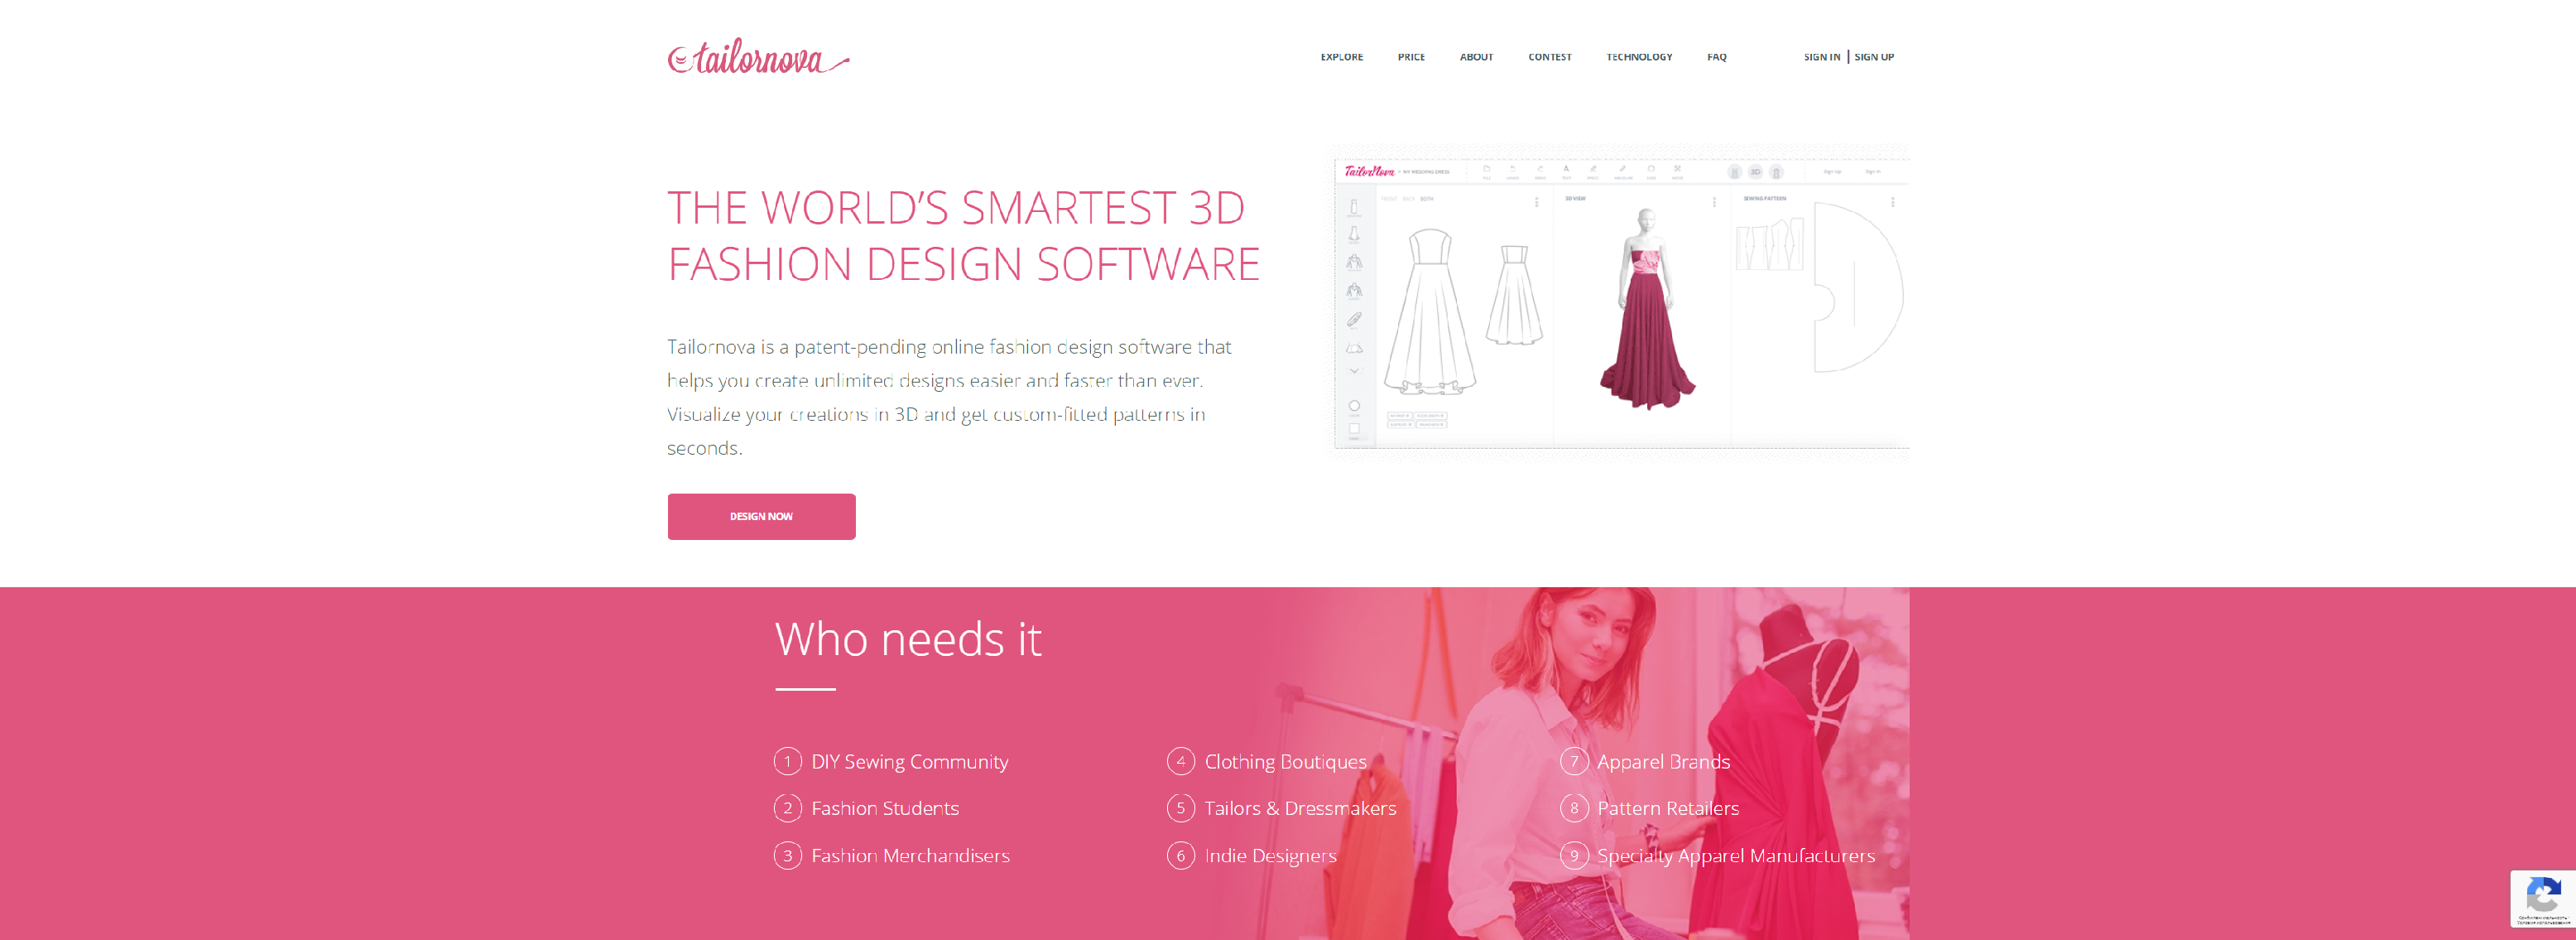 Top 7 Best Clothing Design Software For Professional Designers And Amateur 2020 Cllax Top Of It